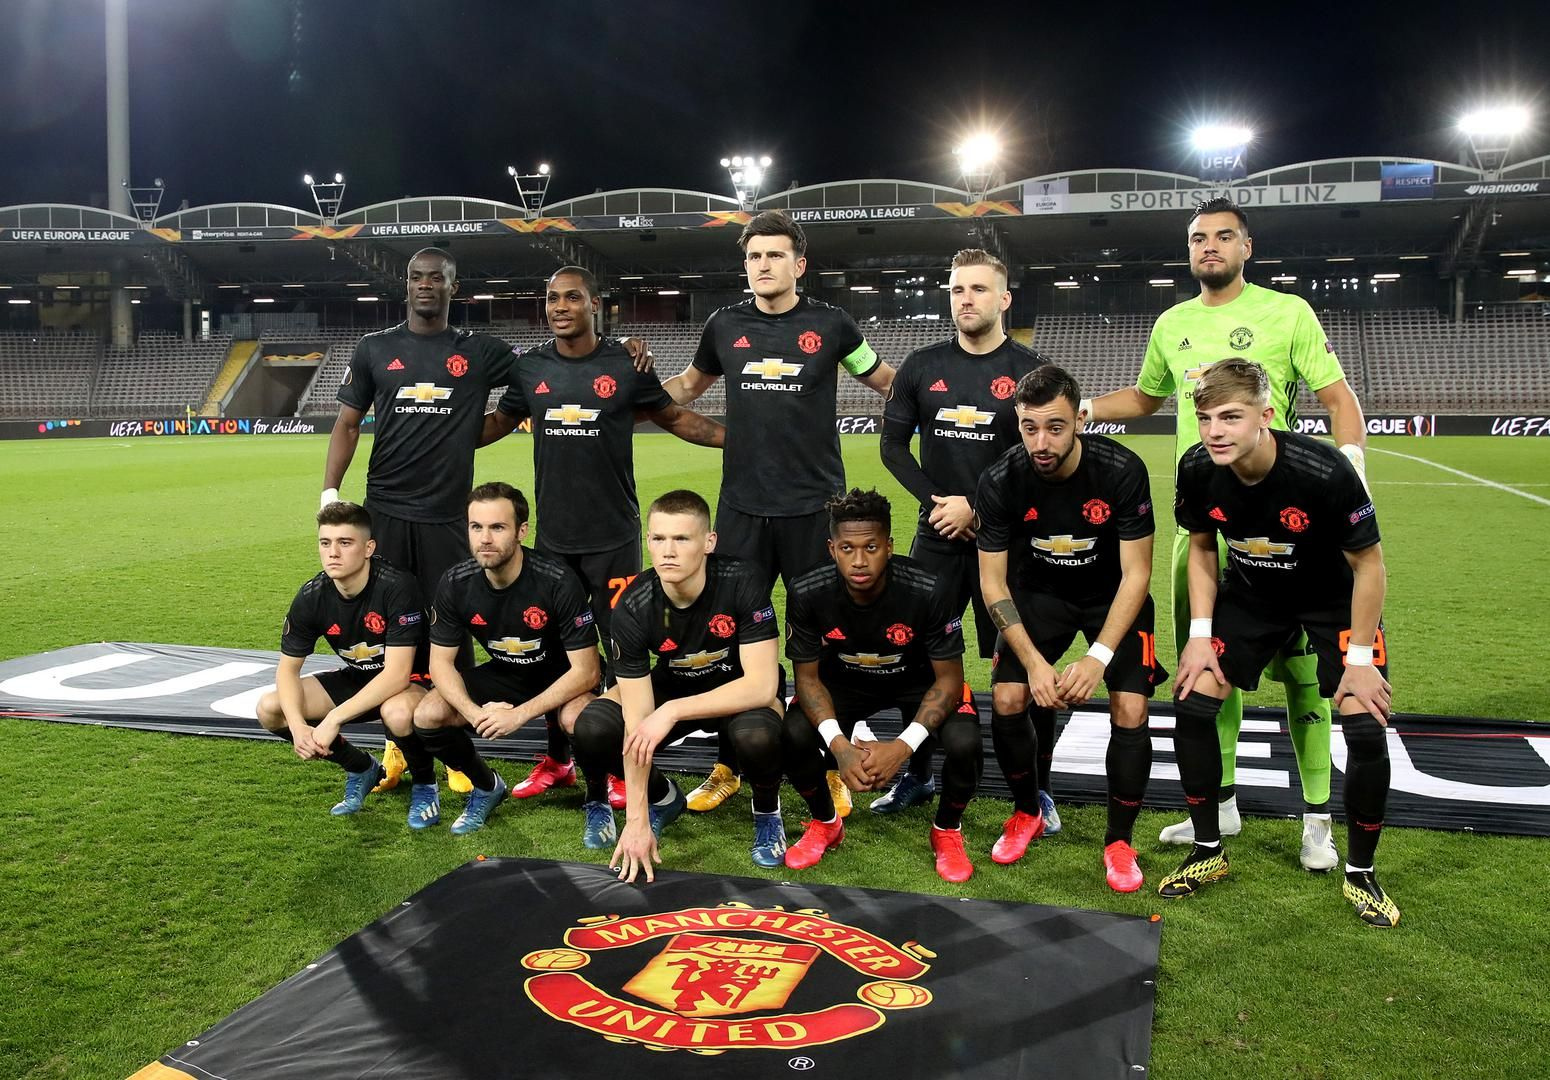 Match Pics From Lask V Man United In Europa League Manchester United In 2020 Europa League Man United League